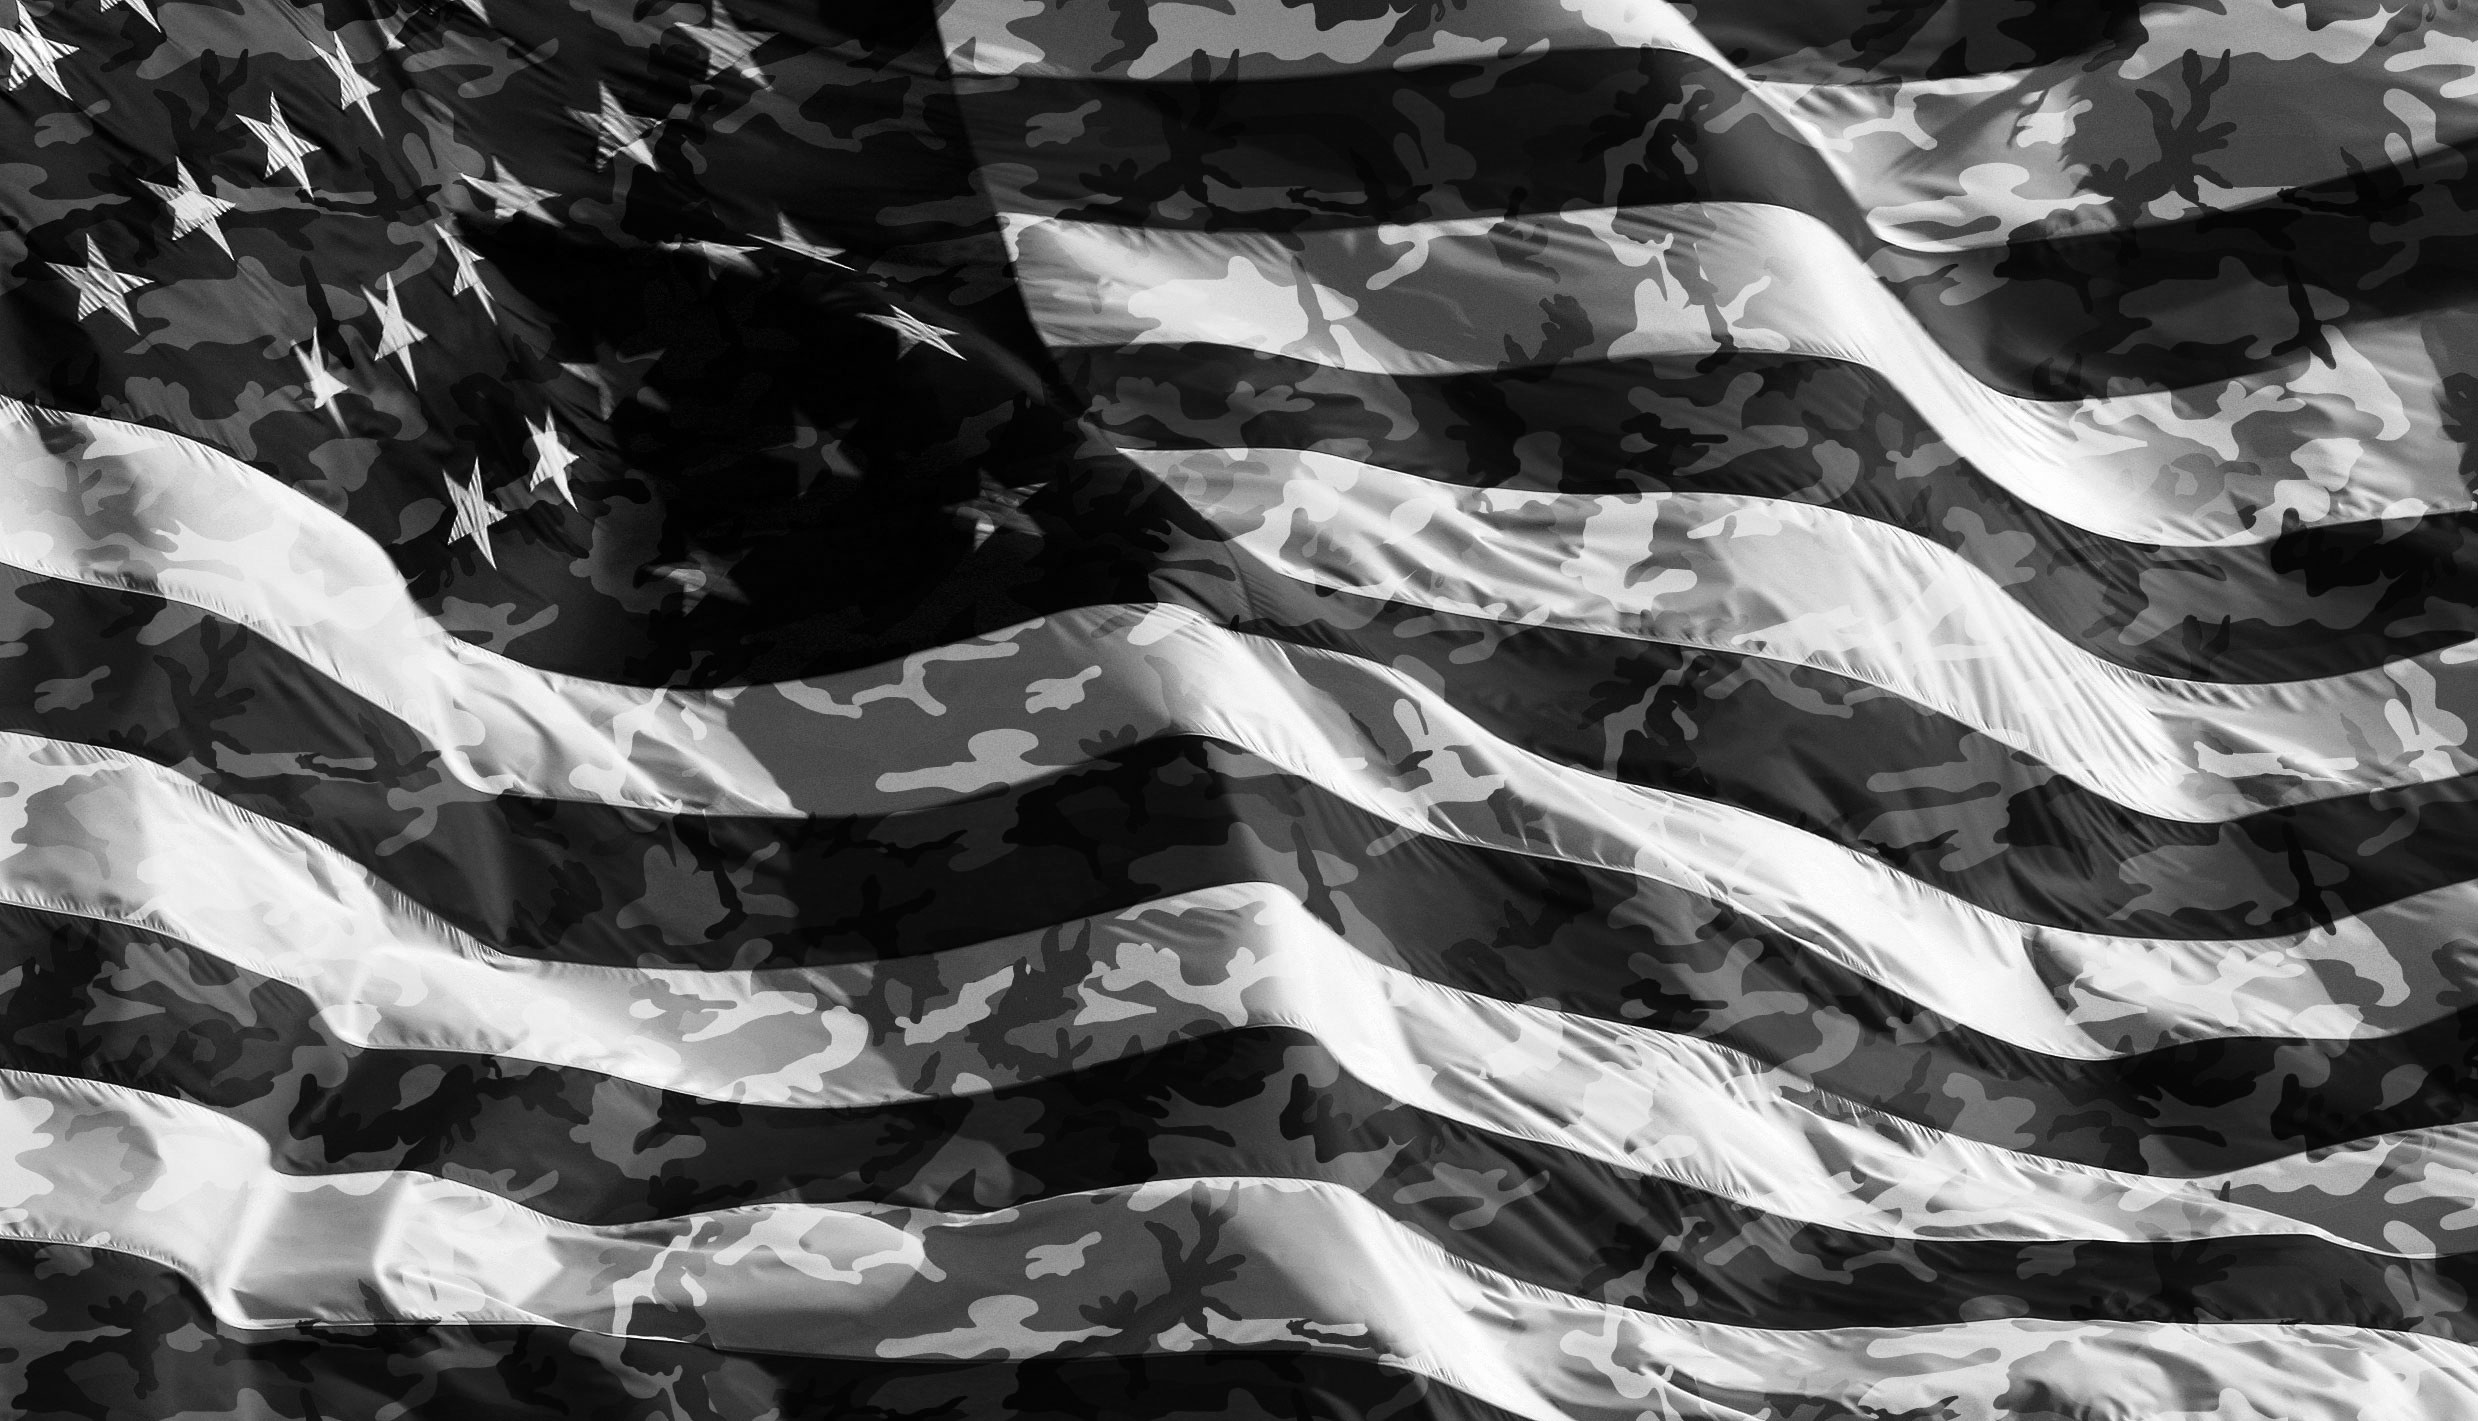 American Flag Wallpaper – Android Apps on Google Play